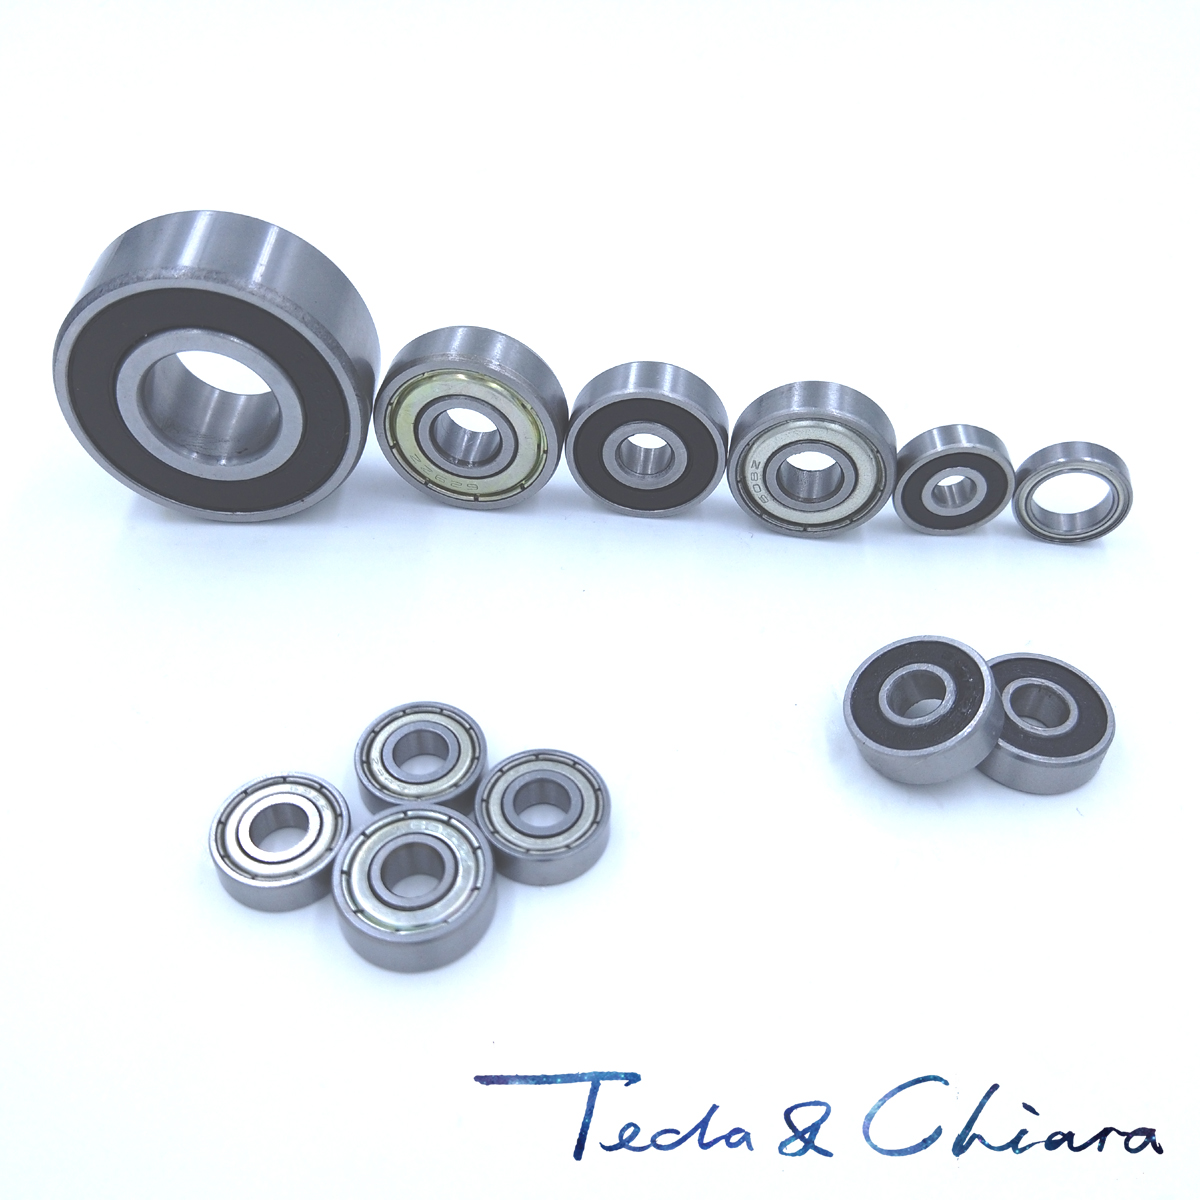 673-2Z 673ZZ MR63 MR63ZZ MR63RS MR63-2Z MR63Z MR63-2RS ZZ RS RZ 2RZ Deep Groove Ball Bearings 3 X 6 X 2.5mm